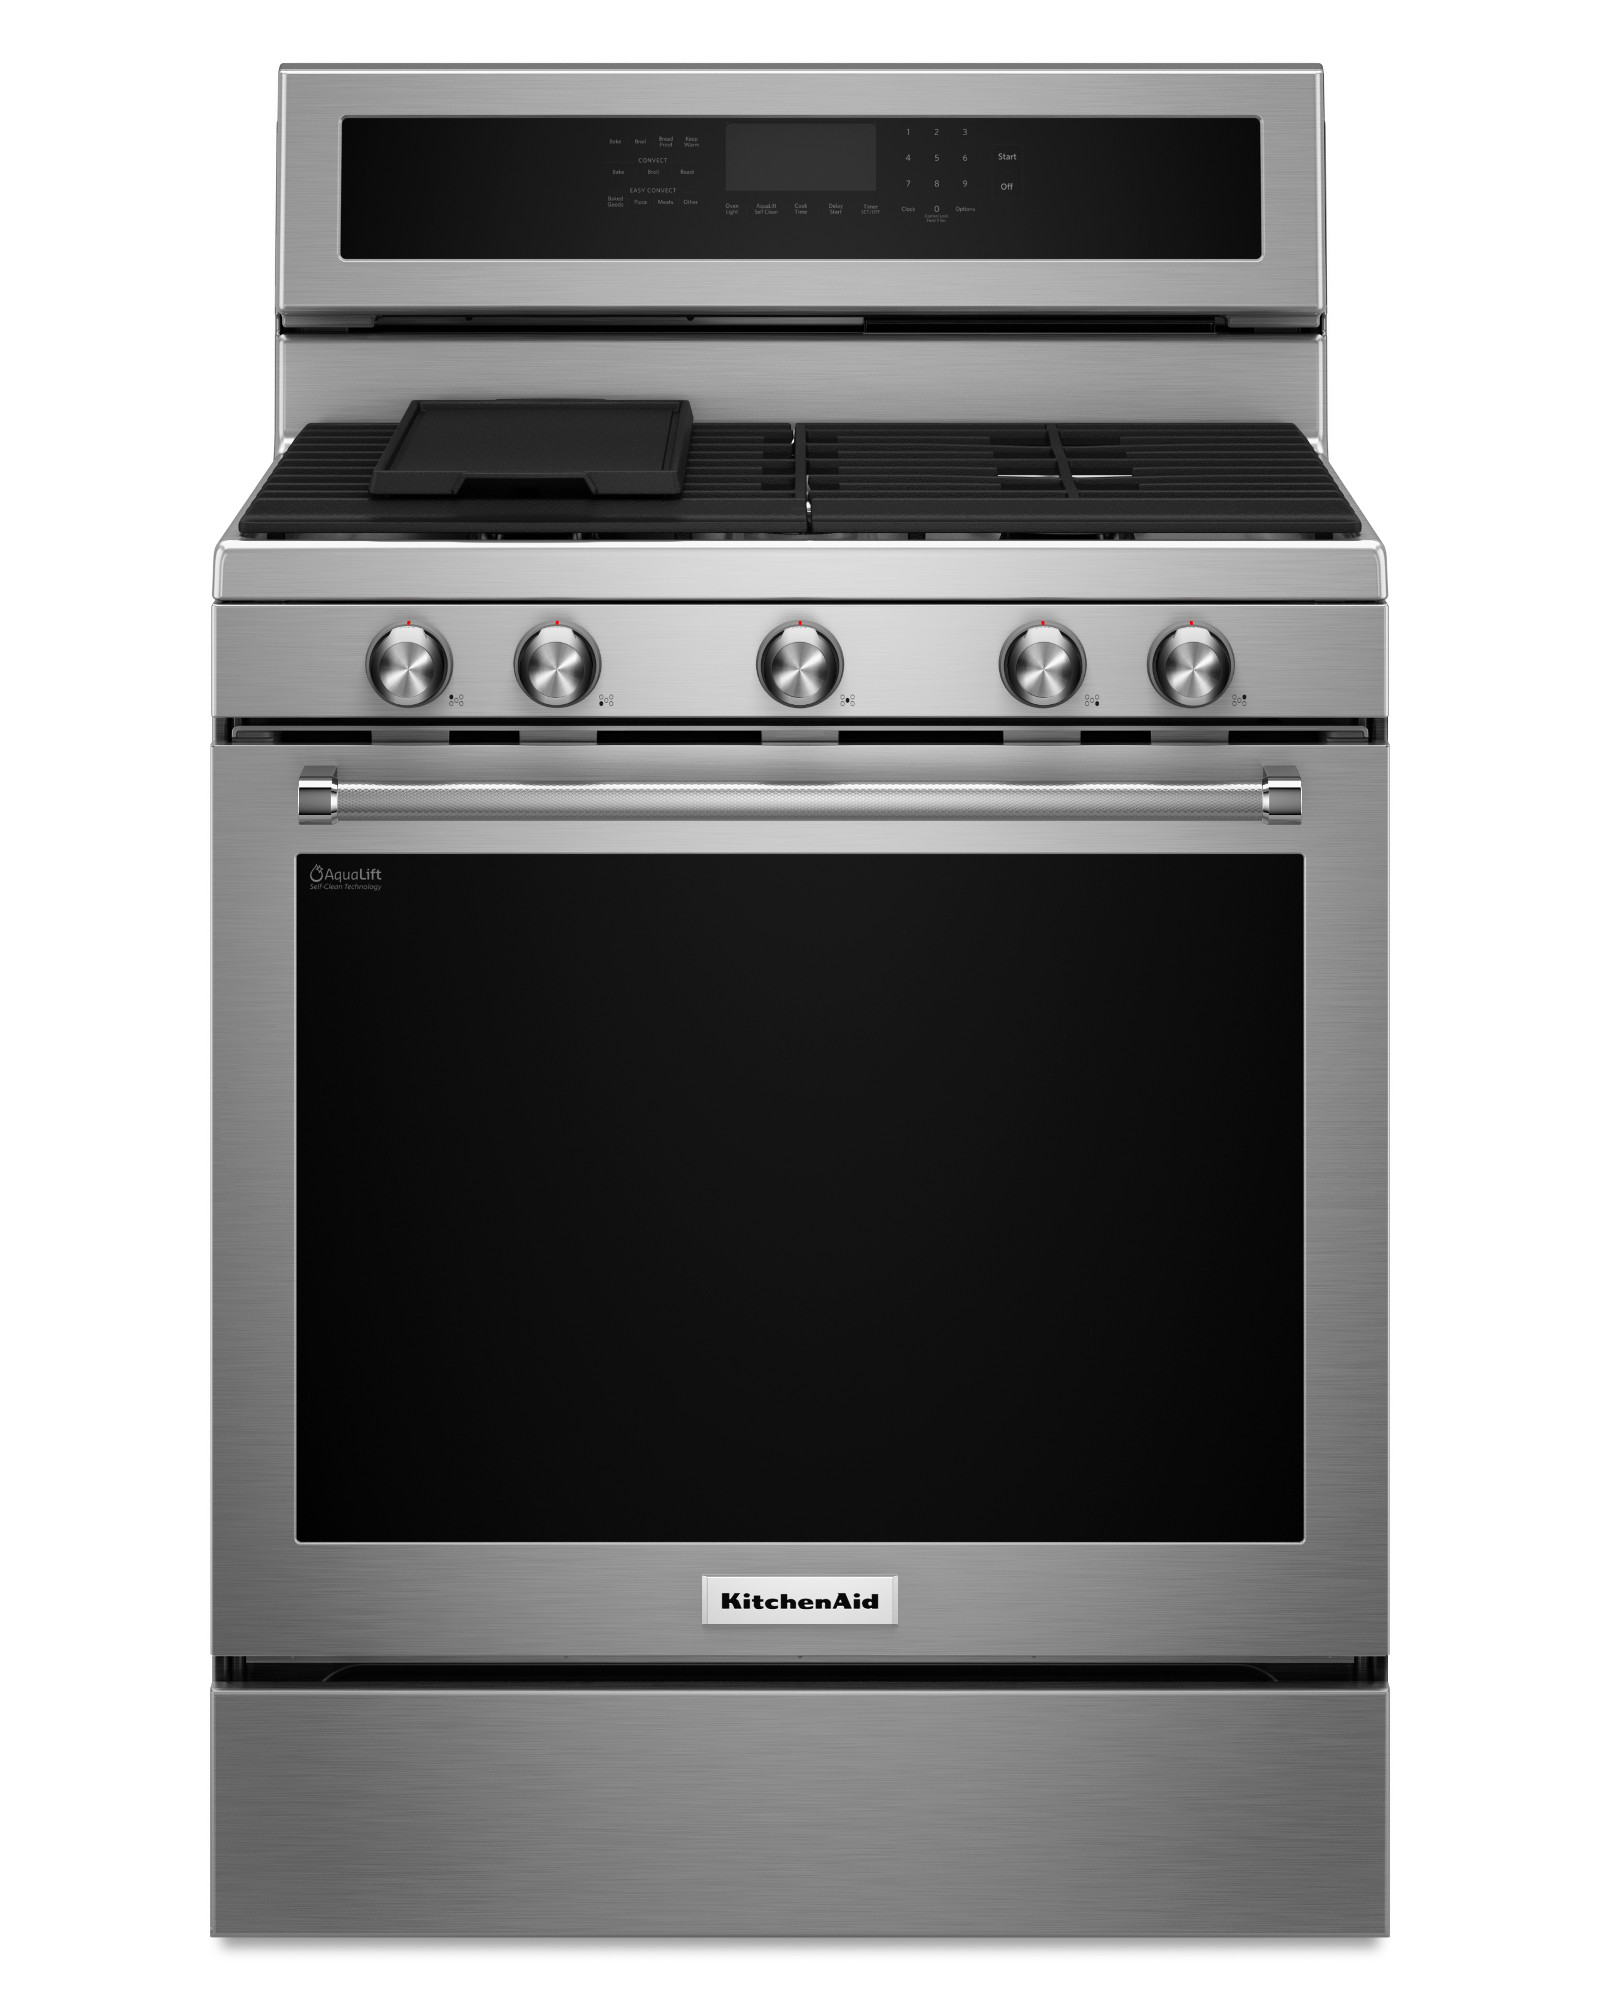 KitchenAid KFGG500ESS 5.8 cu. ft. Freestanding Gas Range - Stainless Steel